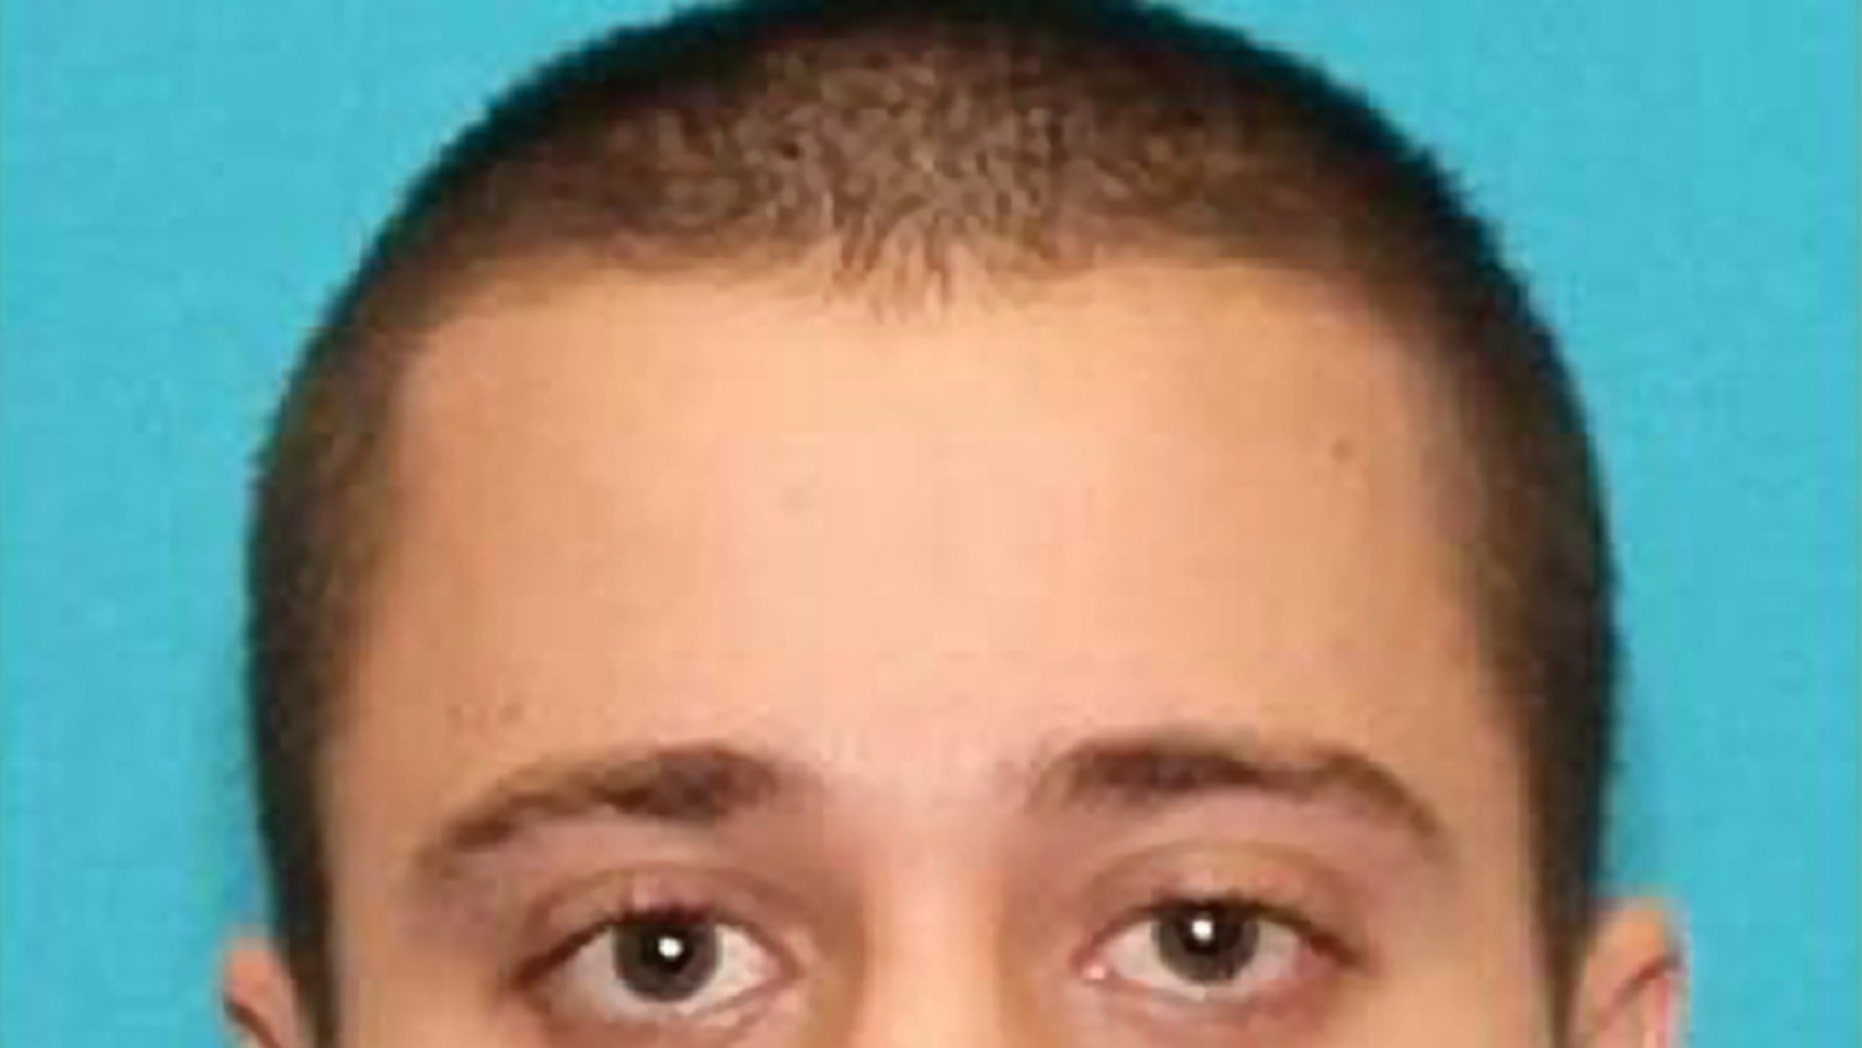 """This photo provided by the FBI shows Paul Ciancia, 23. Ciancia carrying a note that said he wanted to """"kill TSA"""" pulled a semi-automatic rifle from a bag and shot his way past a security checkpoint at Los Angeles International Airport on Friday, Nov. 1, 2013 killing one Transportation Security Administration officer and wounding two others, authorities said. (AP Photo/FBI)"""